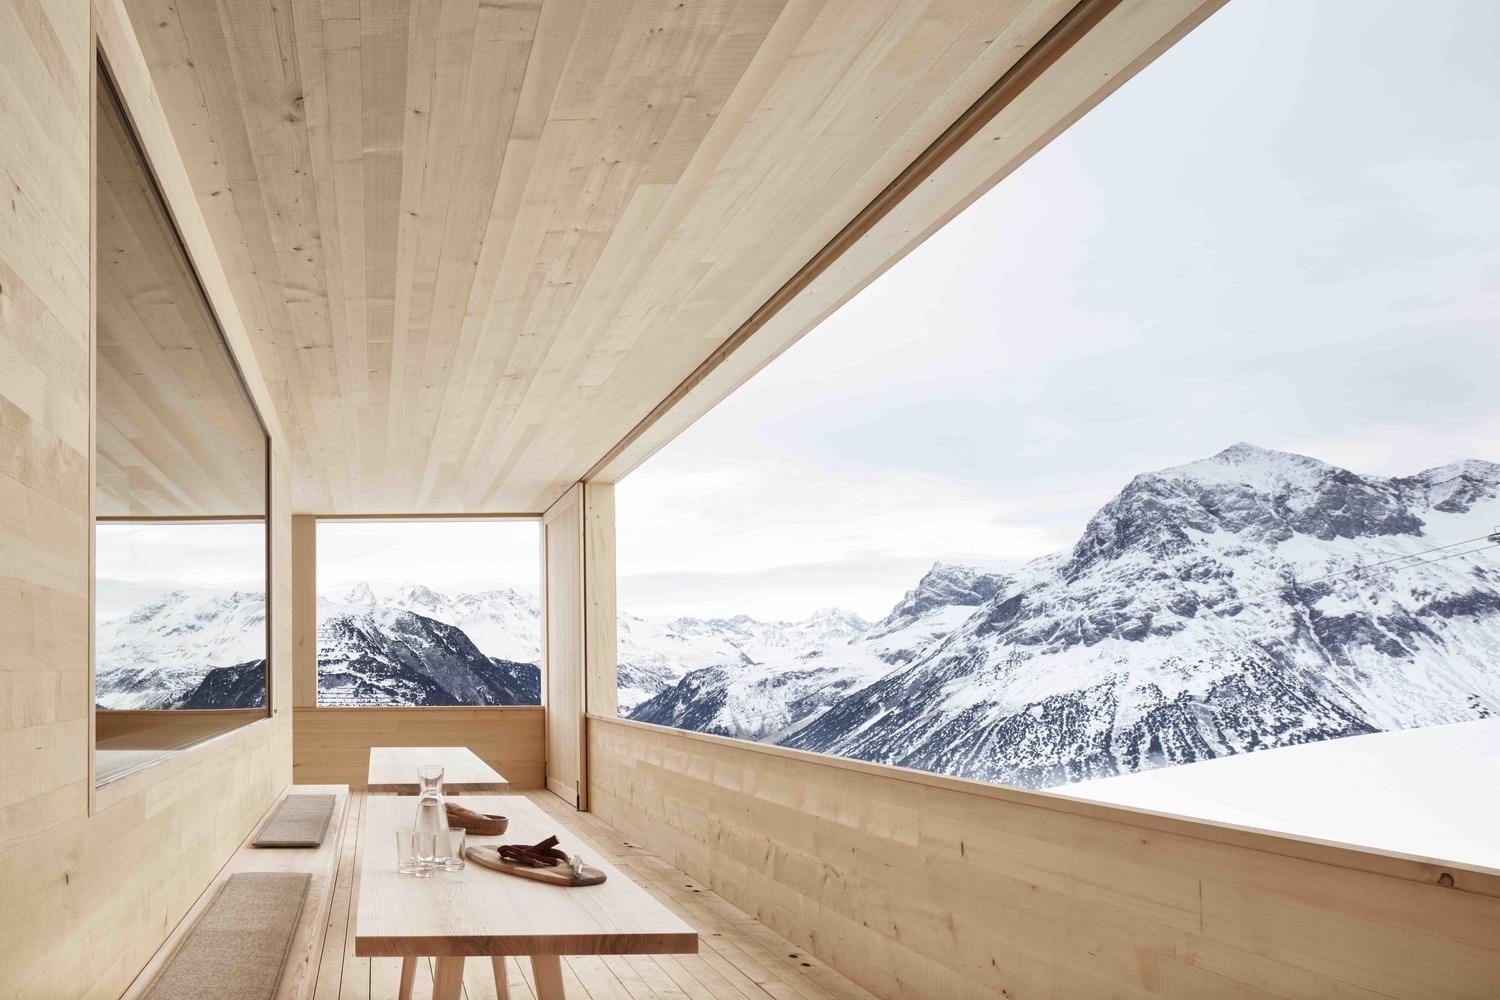 archdaily.com - 15 Incredible Architectural Works in the Mountains